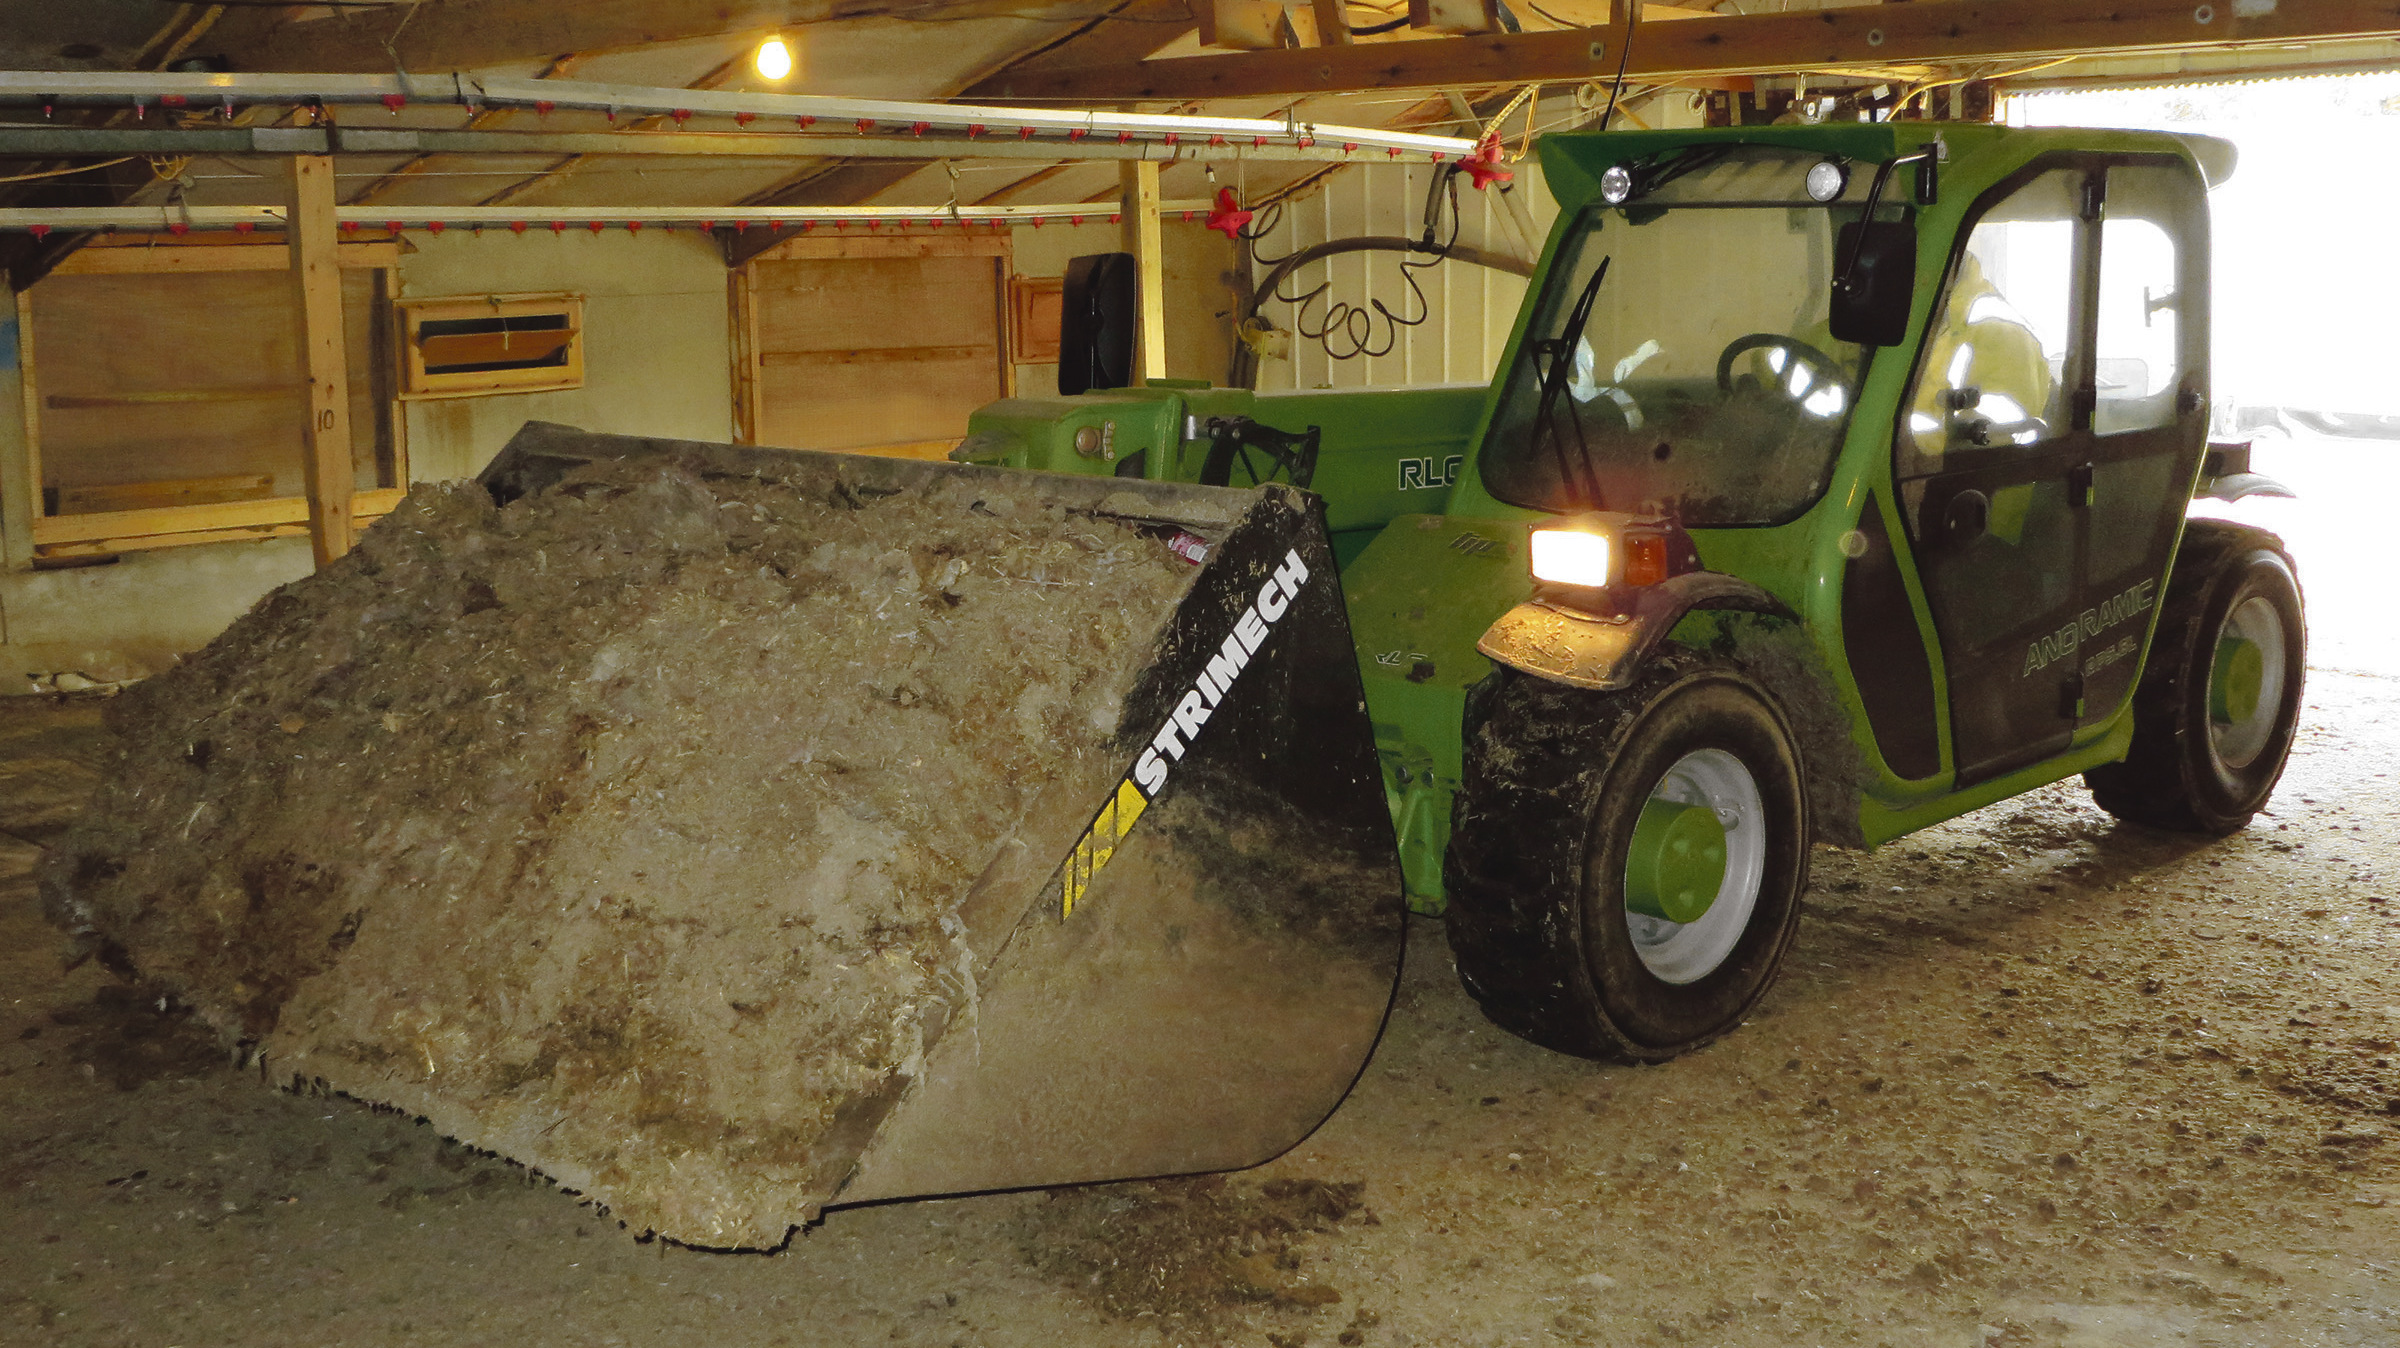 Low-profile Merlo telehandler combines best of both worlds